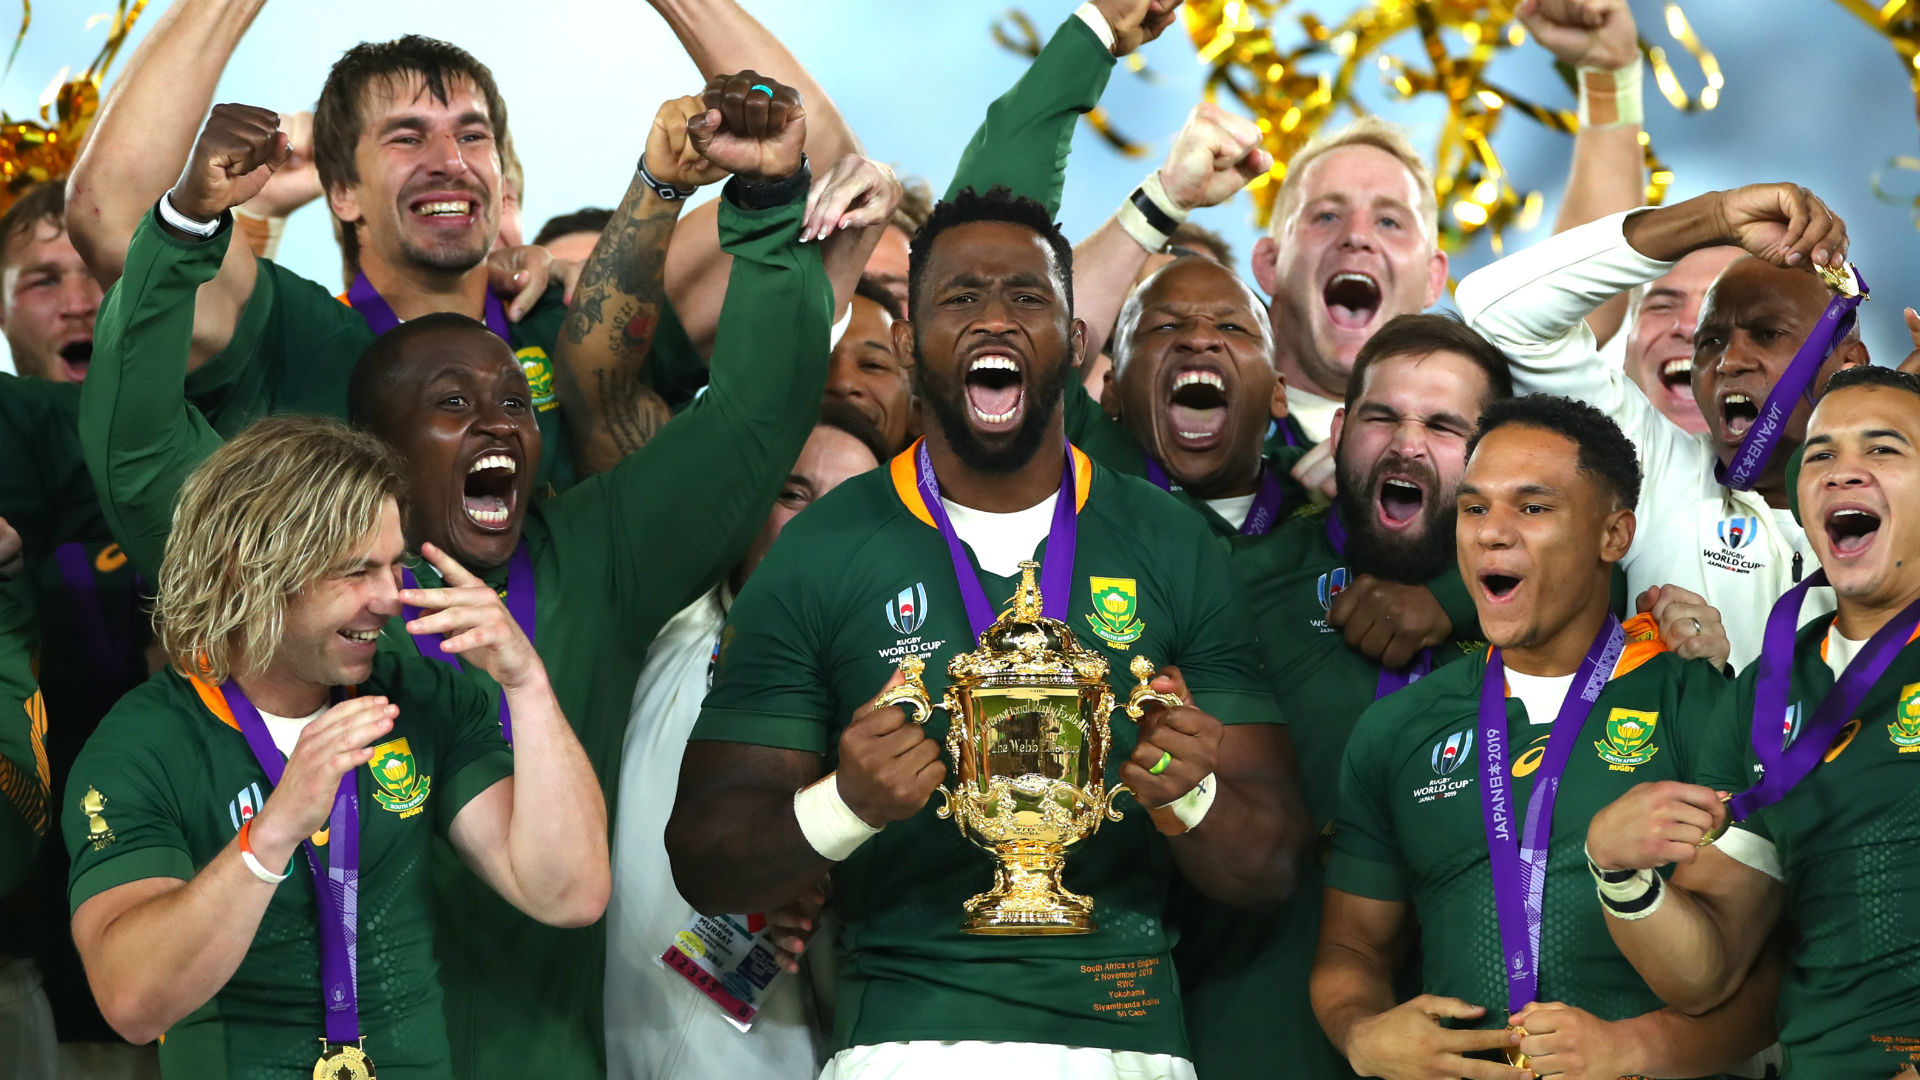 Rugby World Cup 2019: Pollard delight at 'truly historic' South Africa triumph